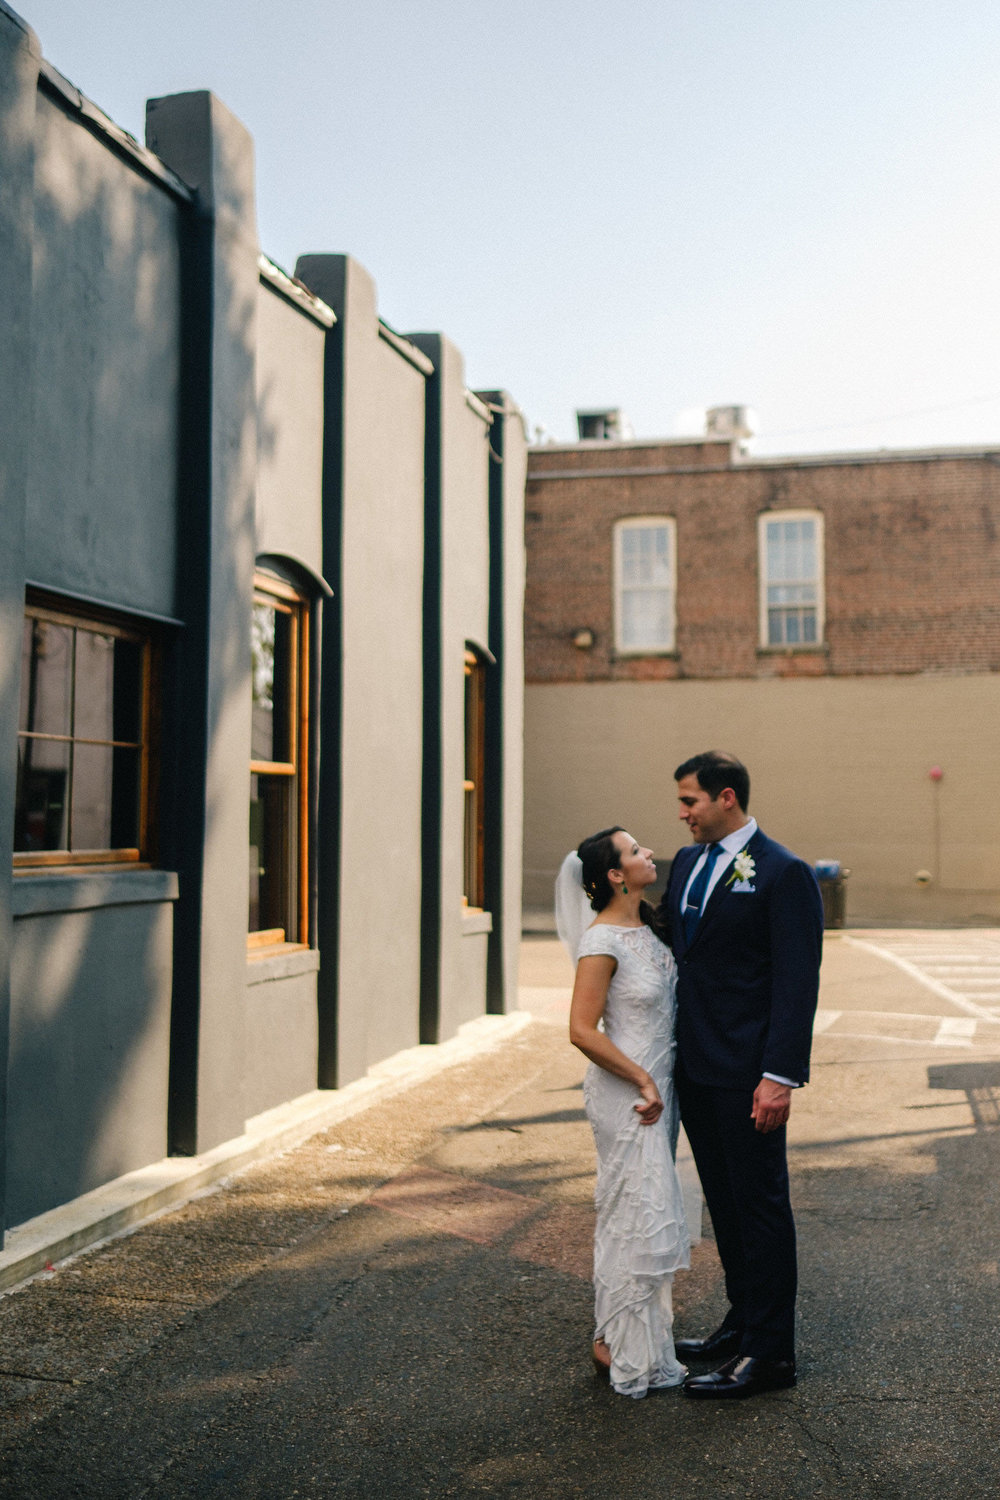 Oxford_mississippi_wedding_photographer_035.jpg